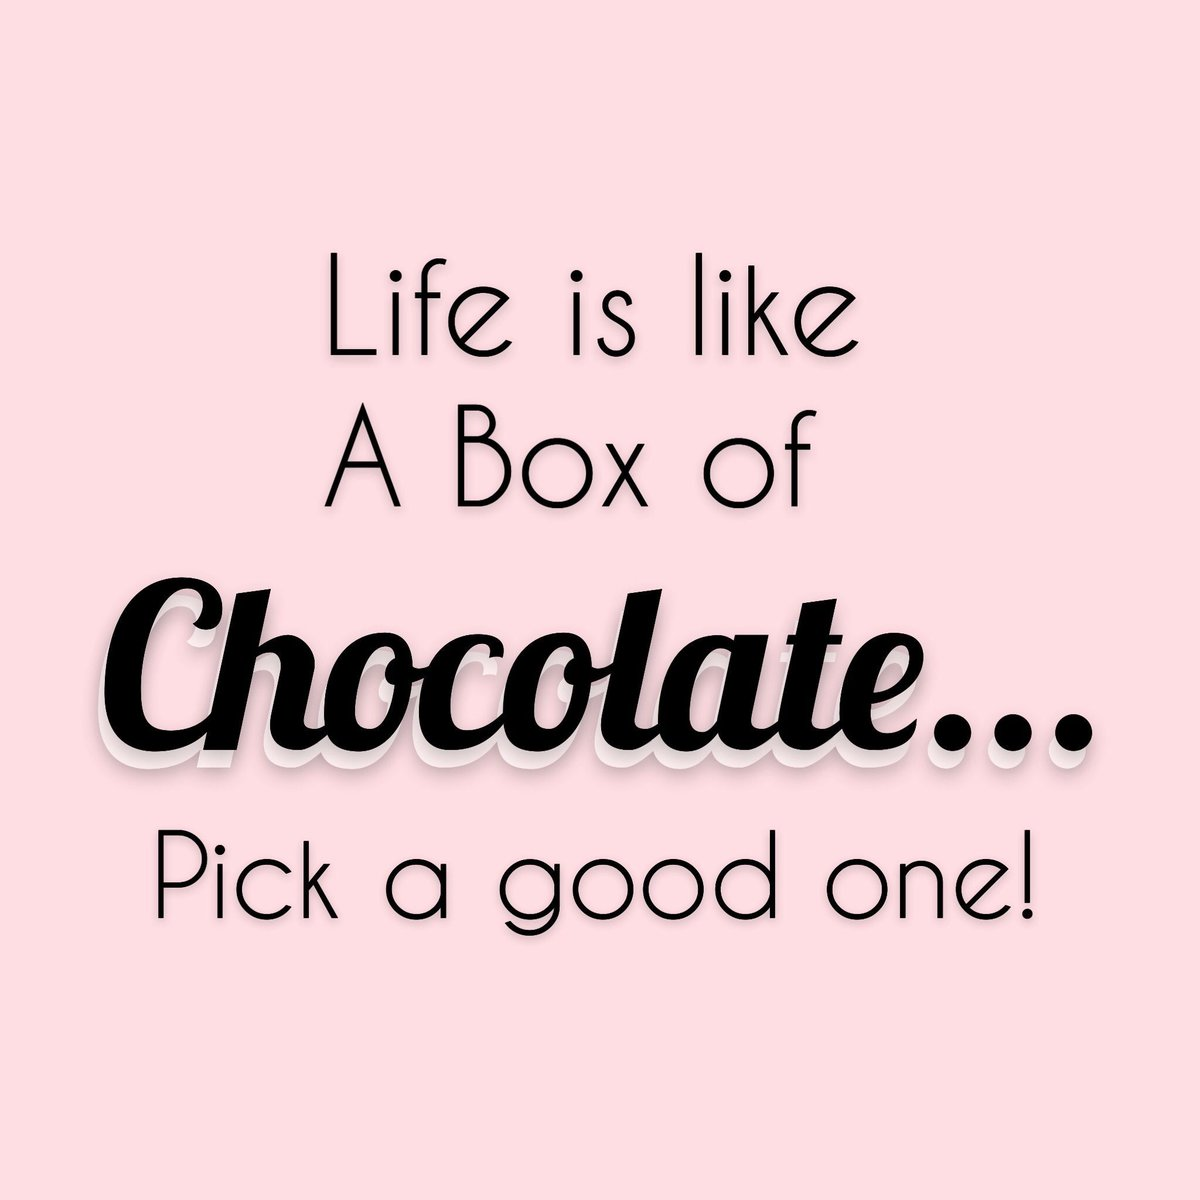 Sabrina Fein On Twitter Life Is Like A Box Of Pick A Good One Loveyourlife Https T Co Jcmsqwf4kt Chocolate Quotes Quotestoliveby Quotesaboutlife Quotes Forrestgump Life Https T Co Ews5likcww